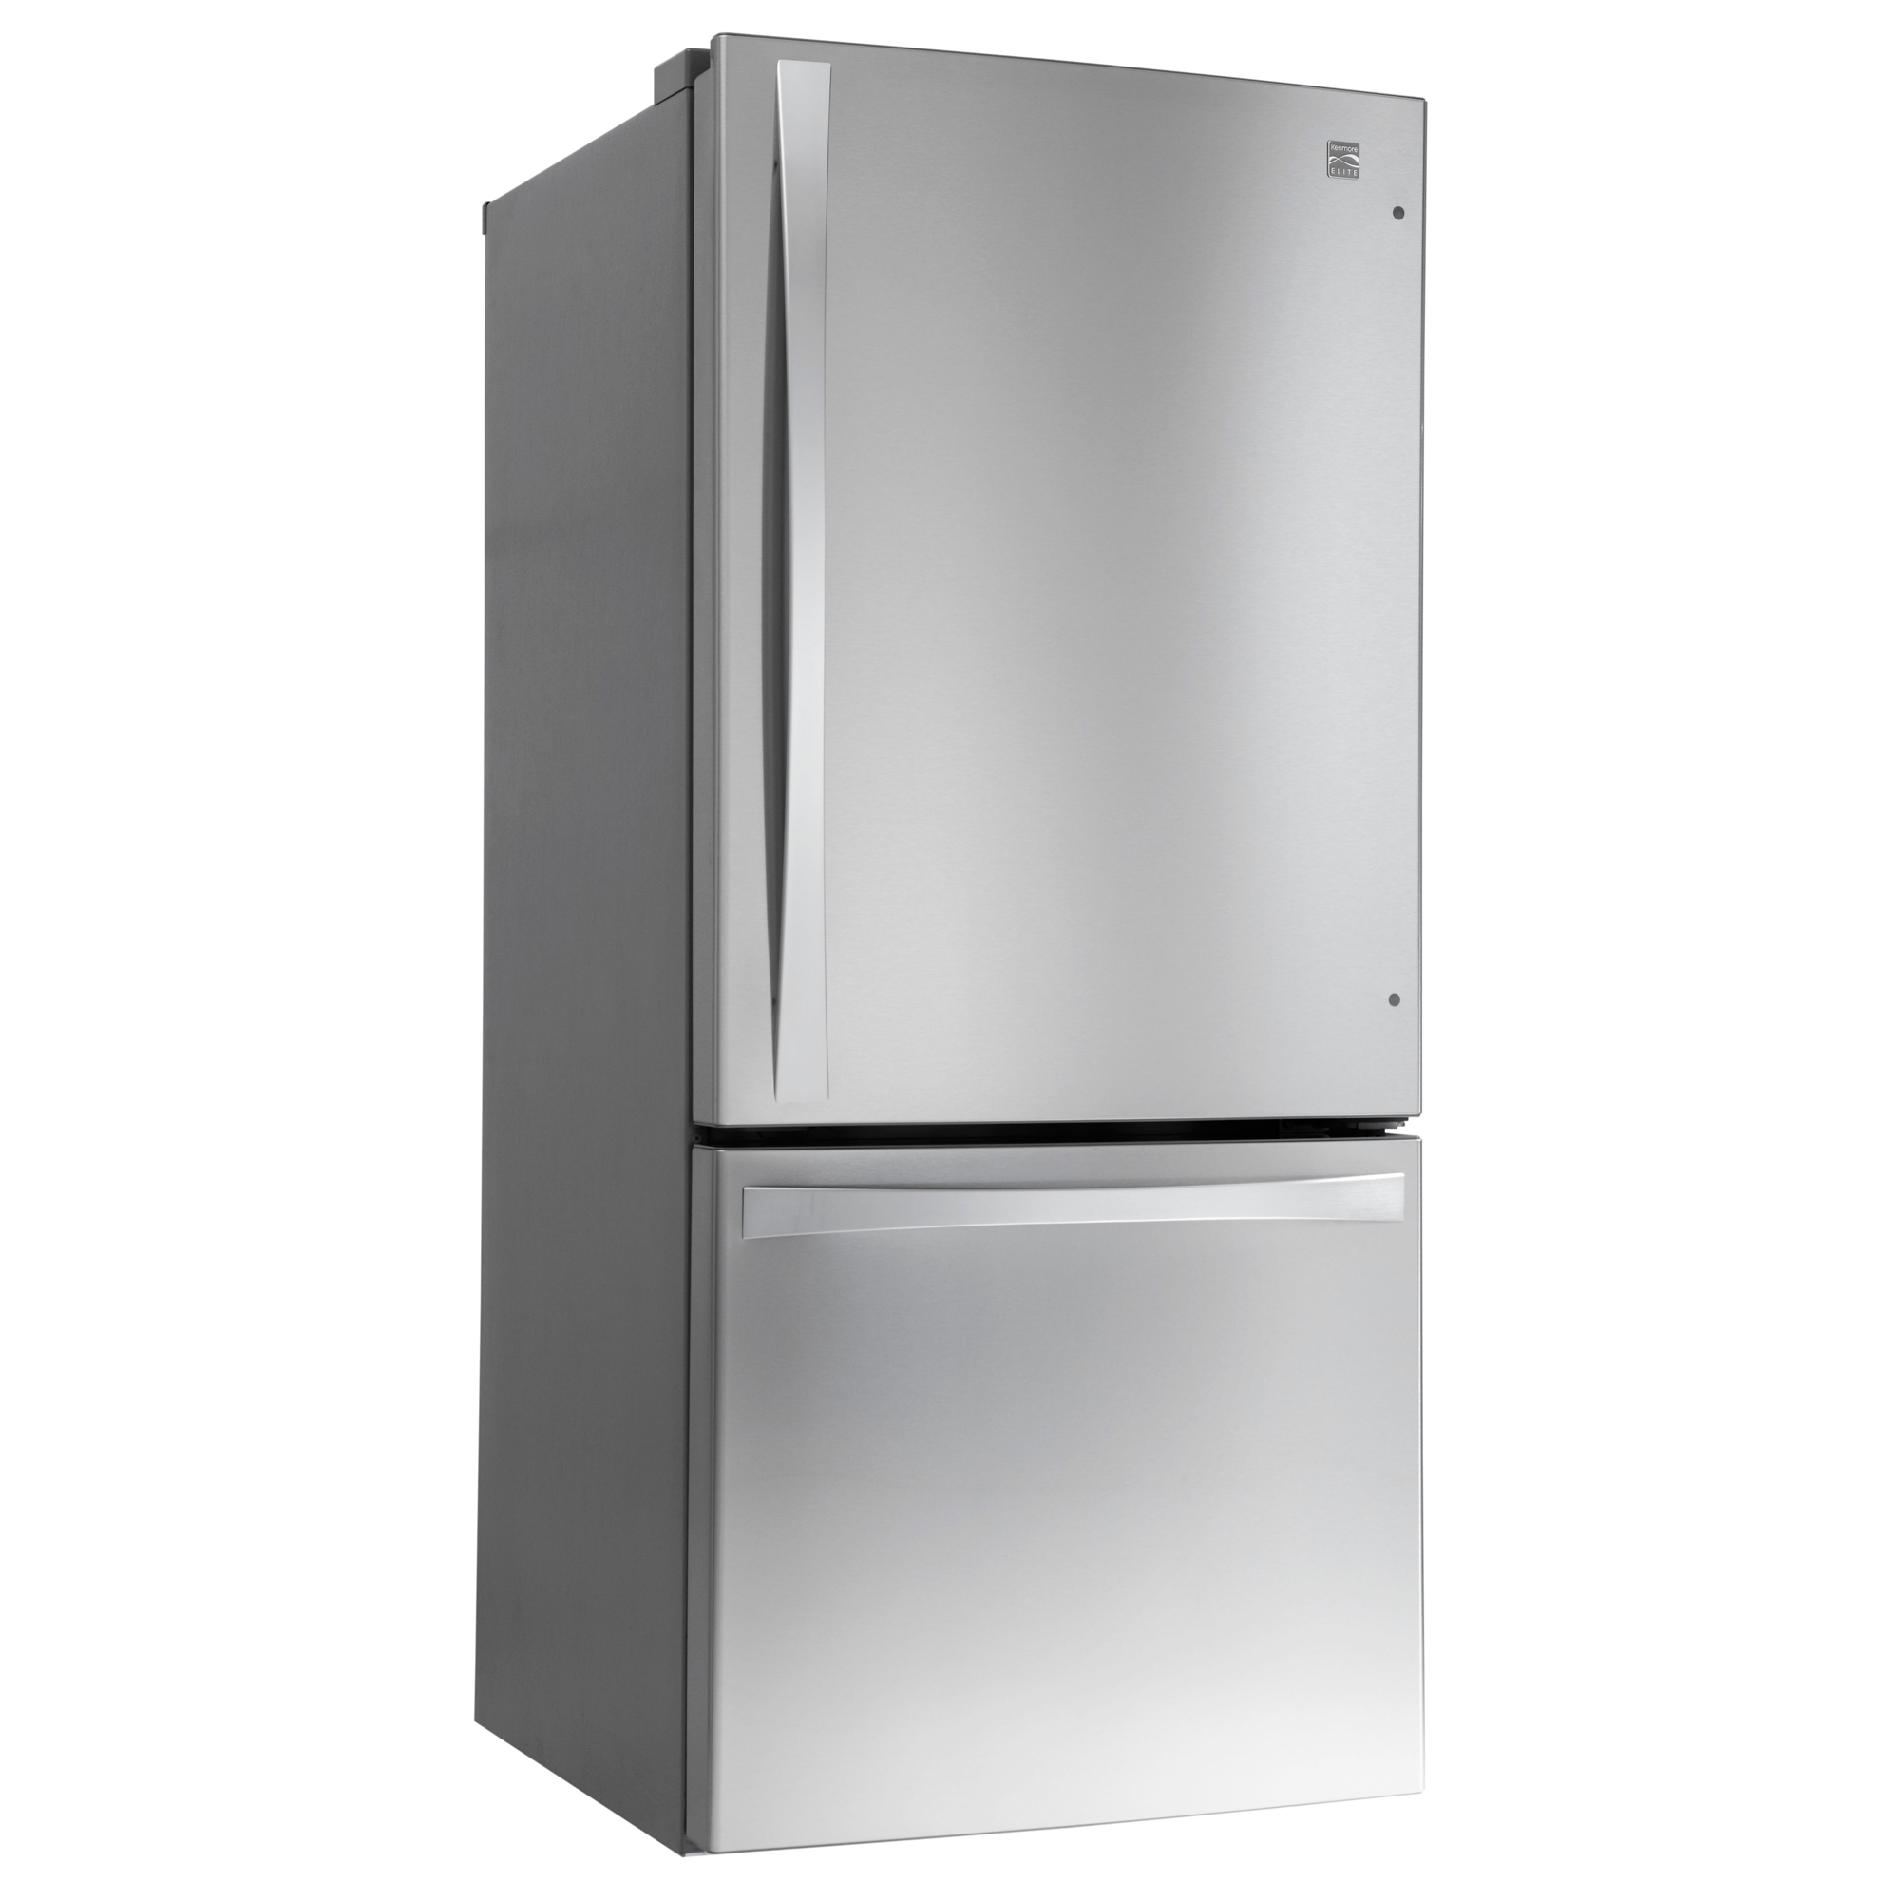 Kenmore Elite 79023 22.1 cu. ft. Bottom-Freezer Refrigerator - Stainless Steel